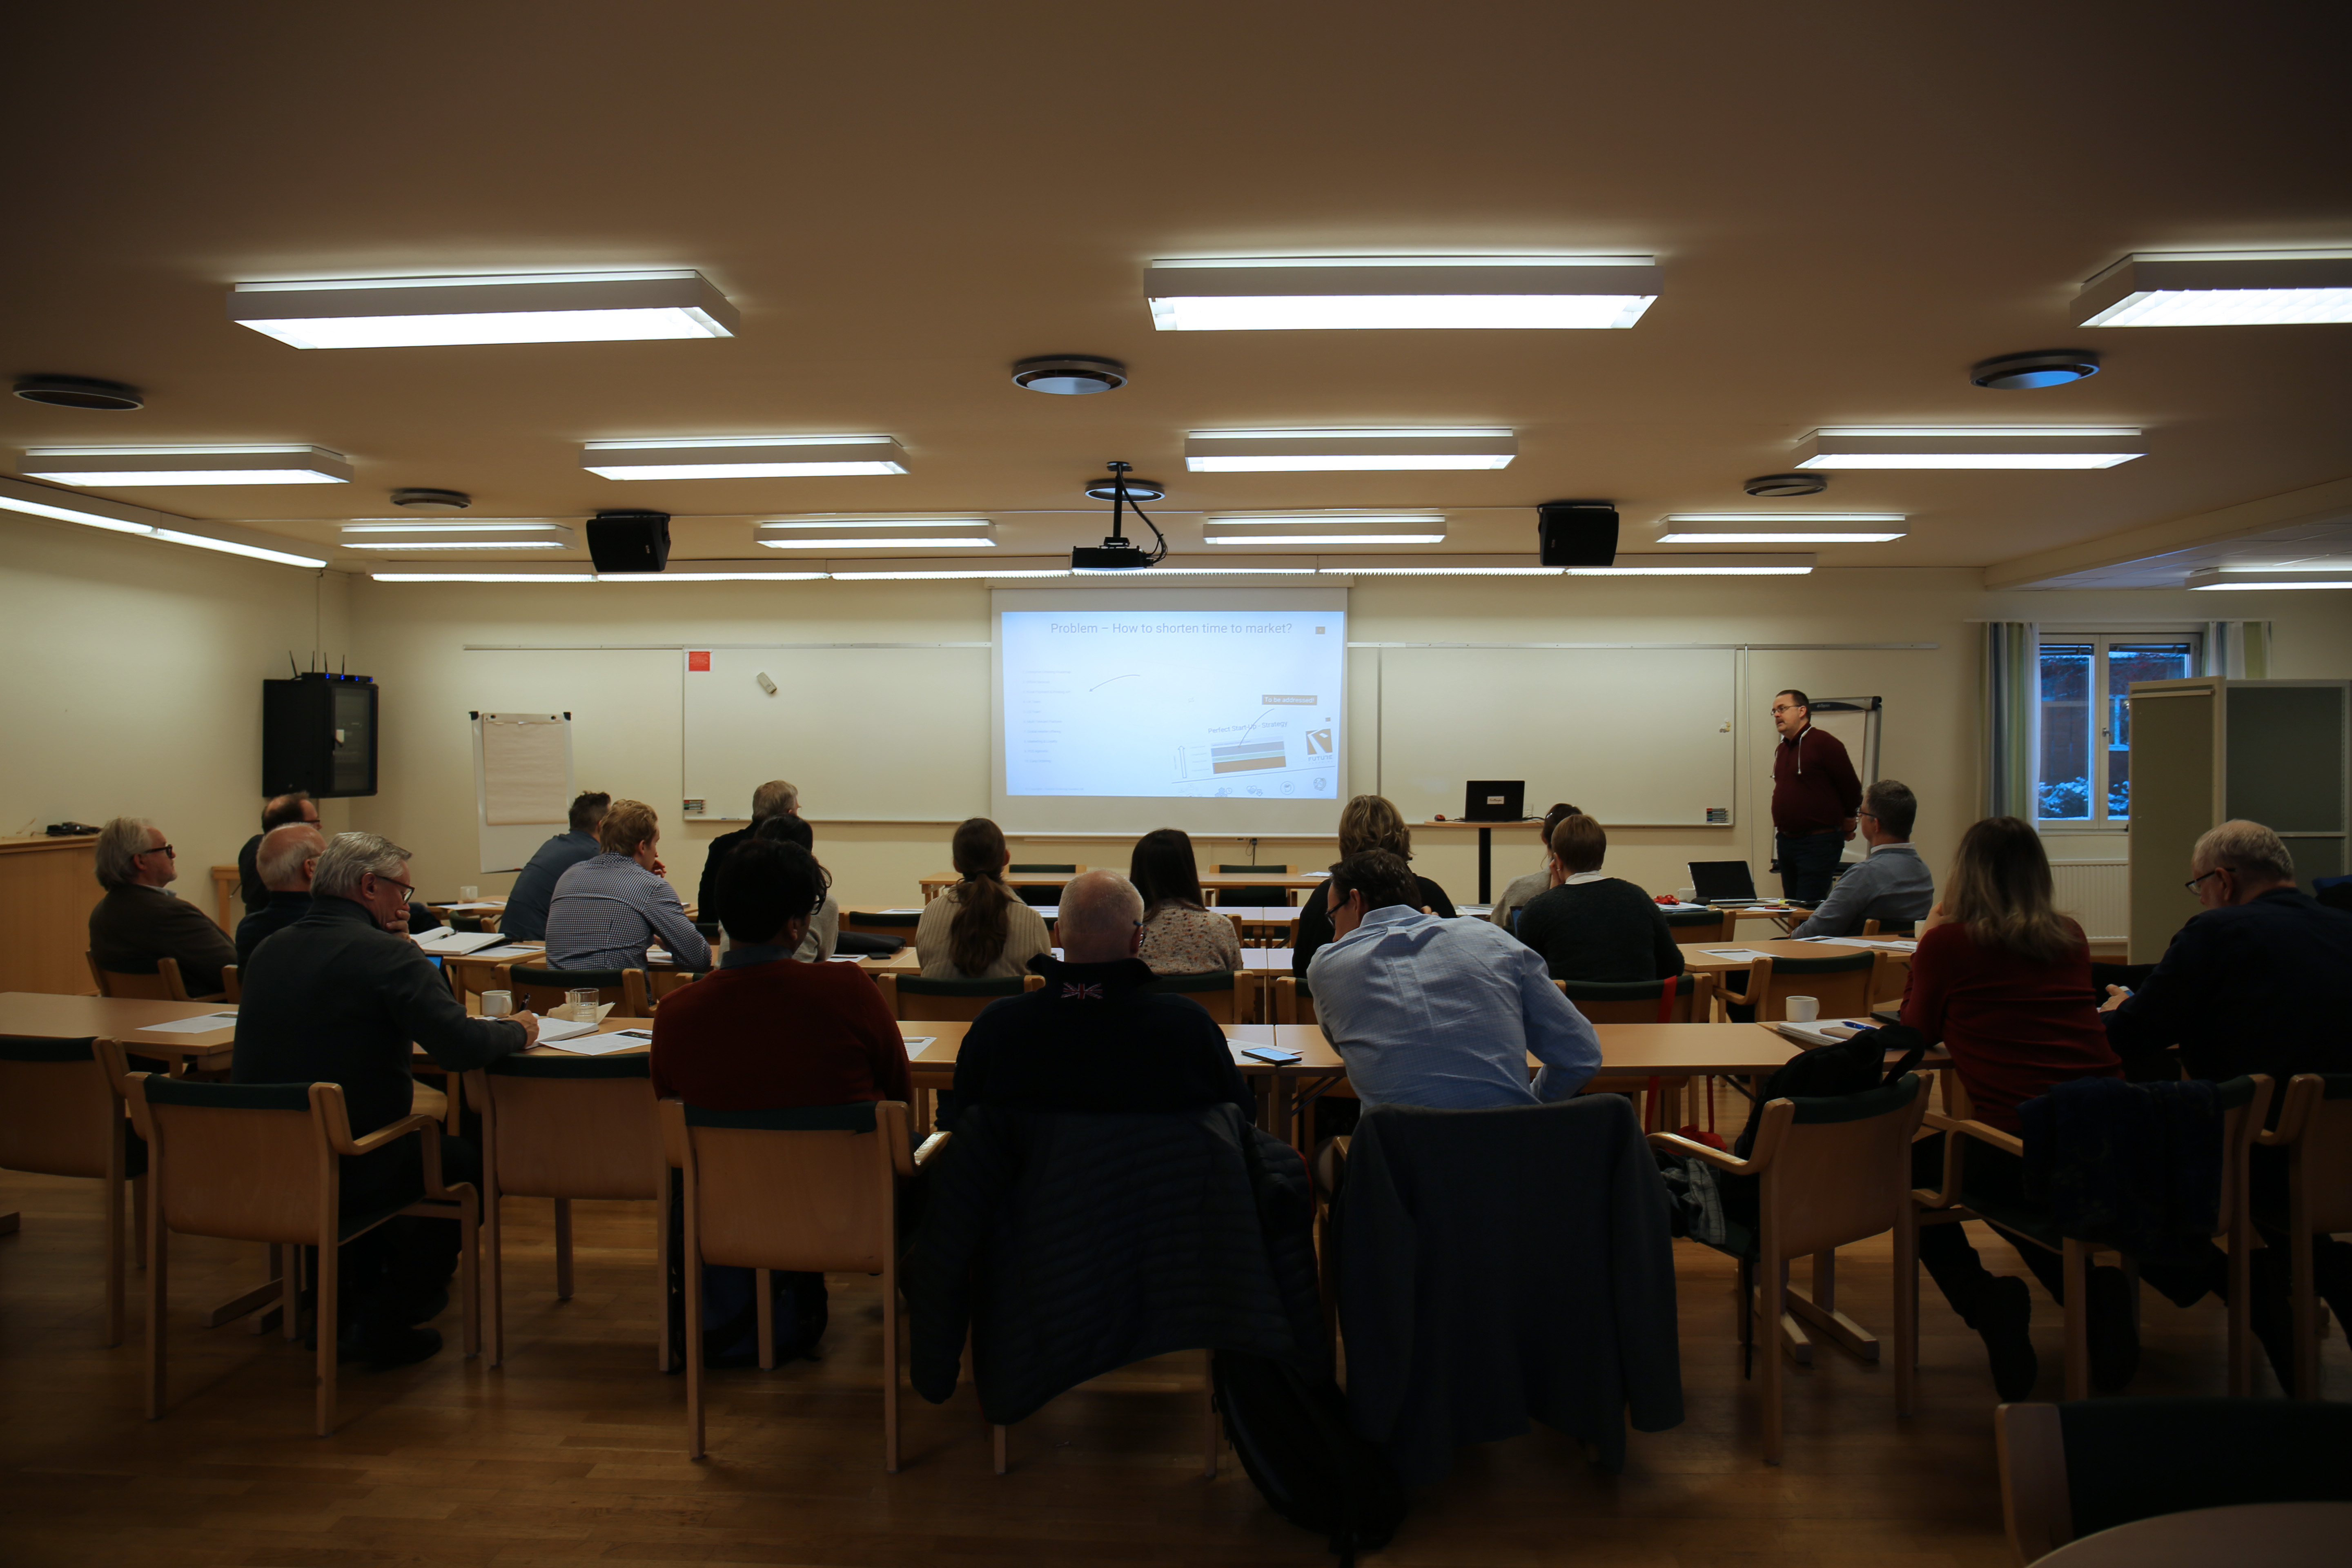 Konferens 3 december: Resultatredovisning och workshop